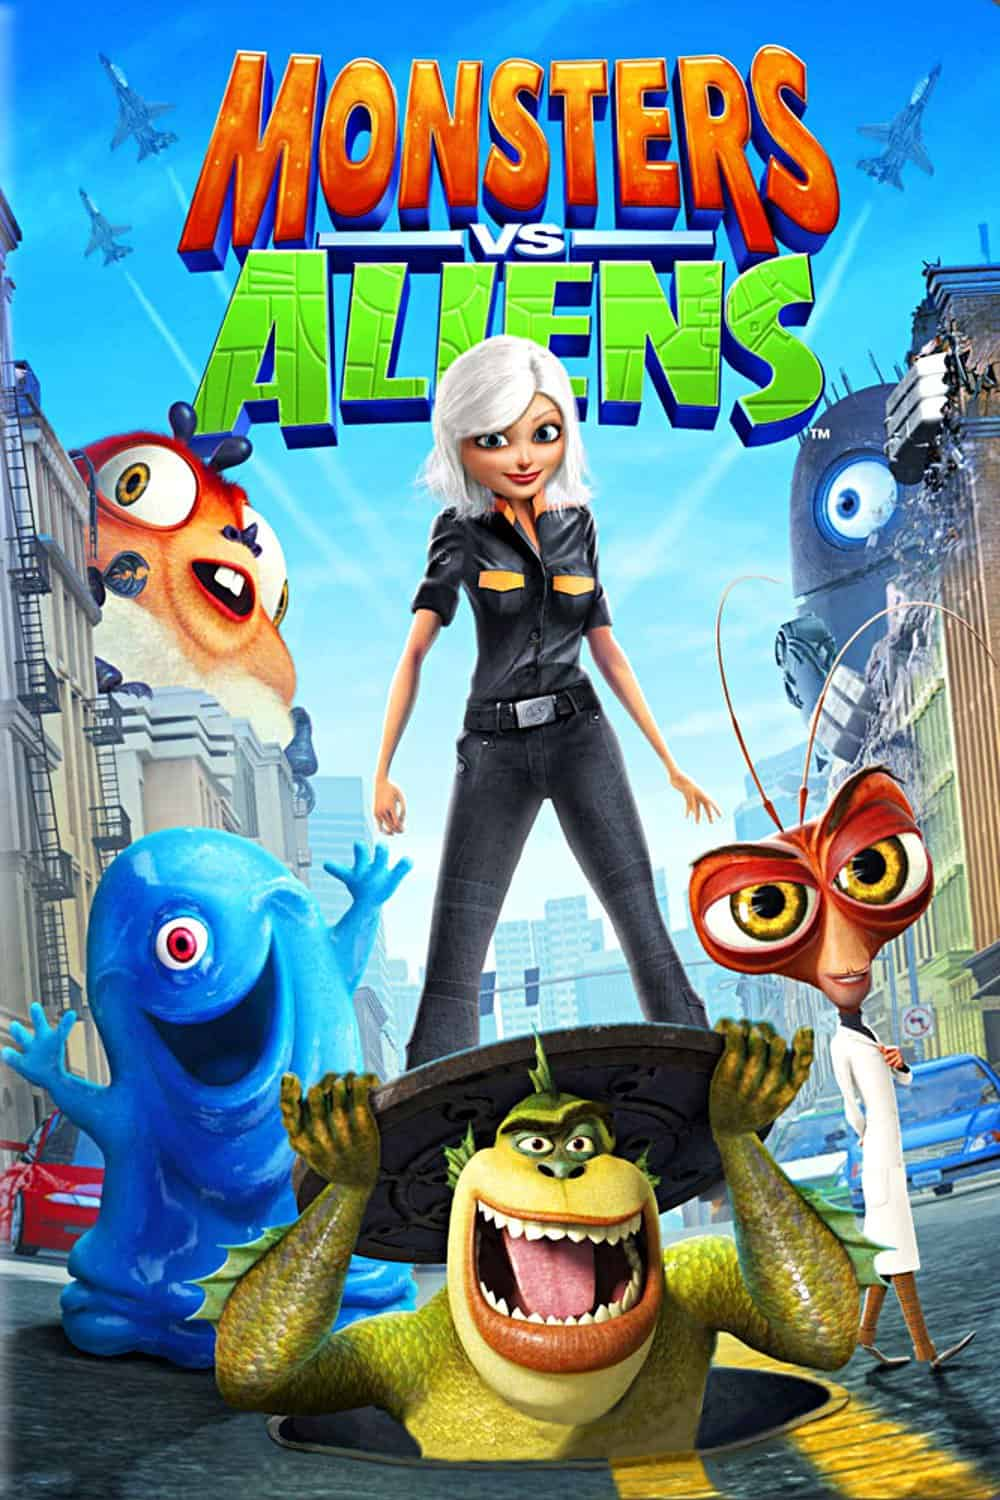 Monsters vs. Aliens, 2009